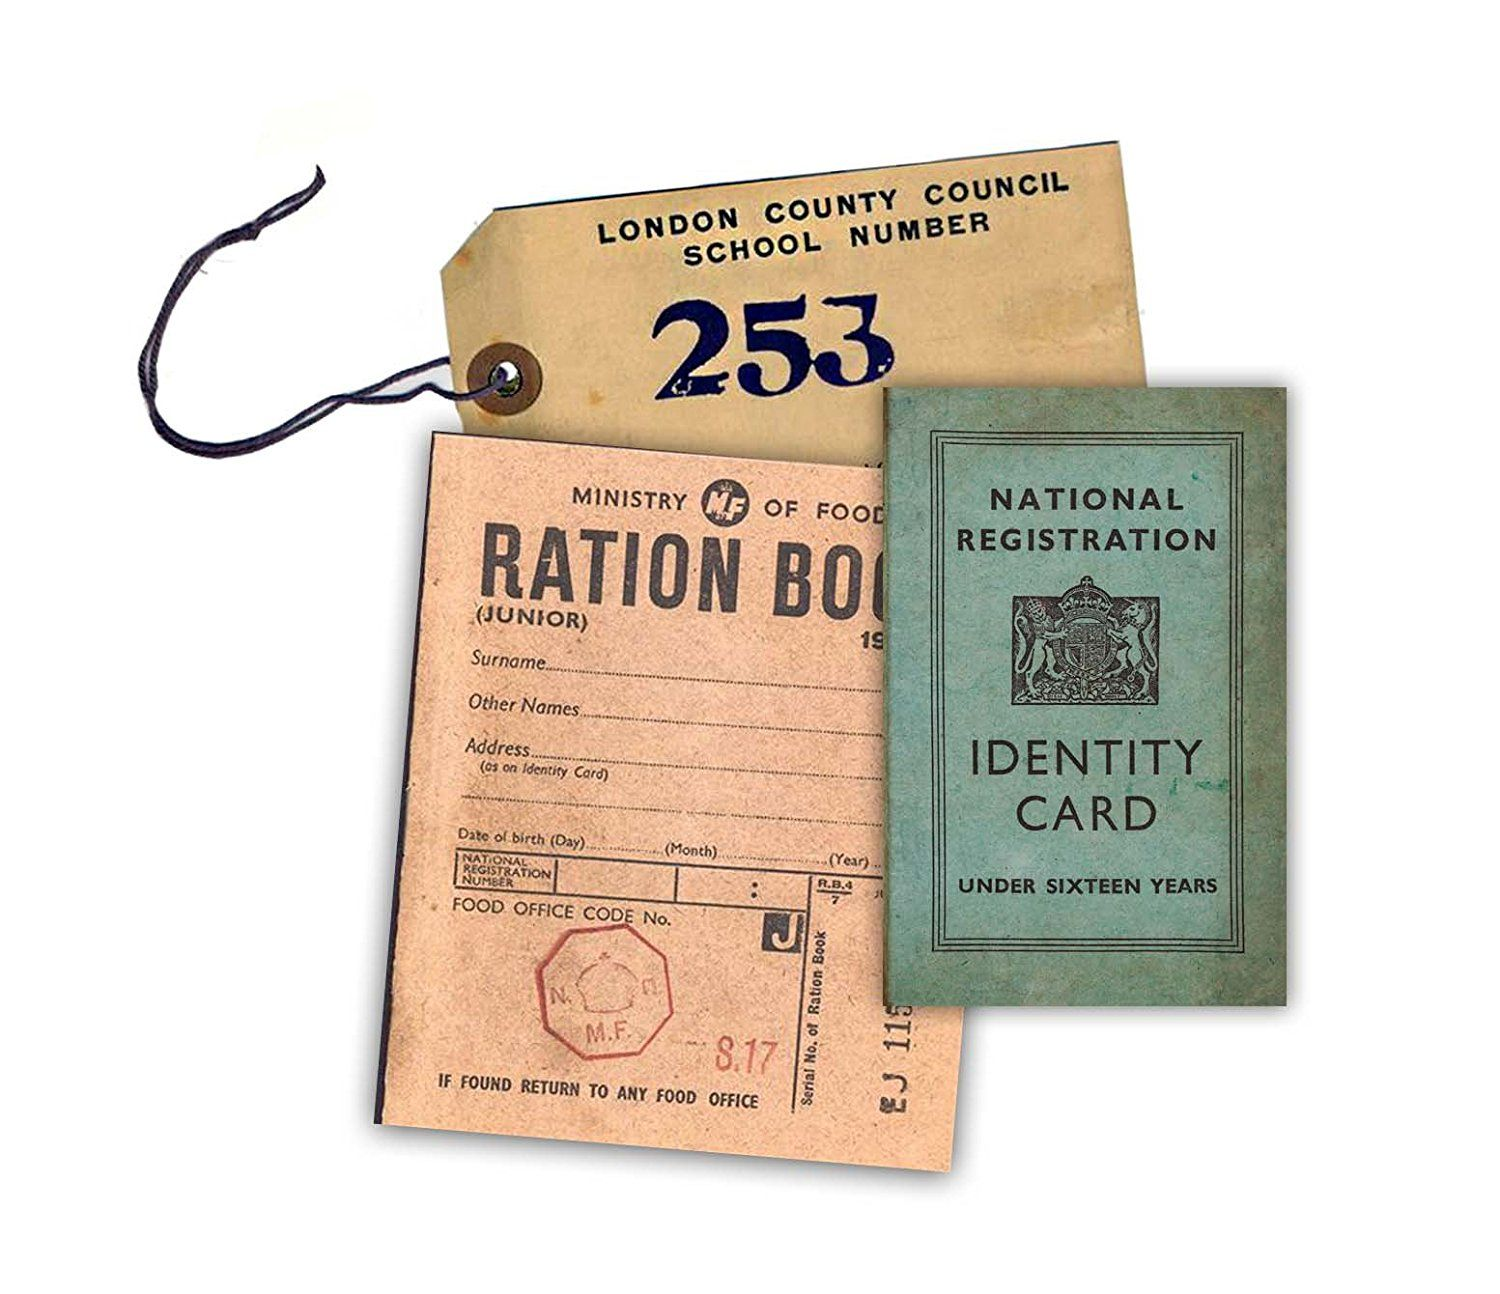 Designer Replica Amazon Ww2 Replica Ration Book Evacuee Tag And Identity Card By